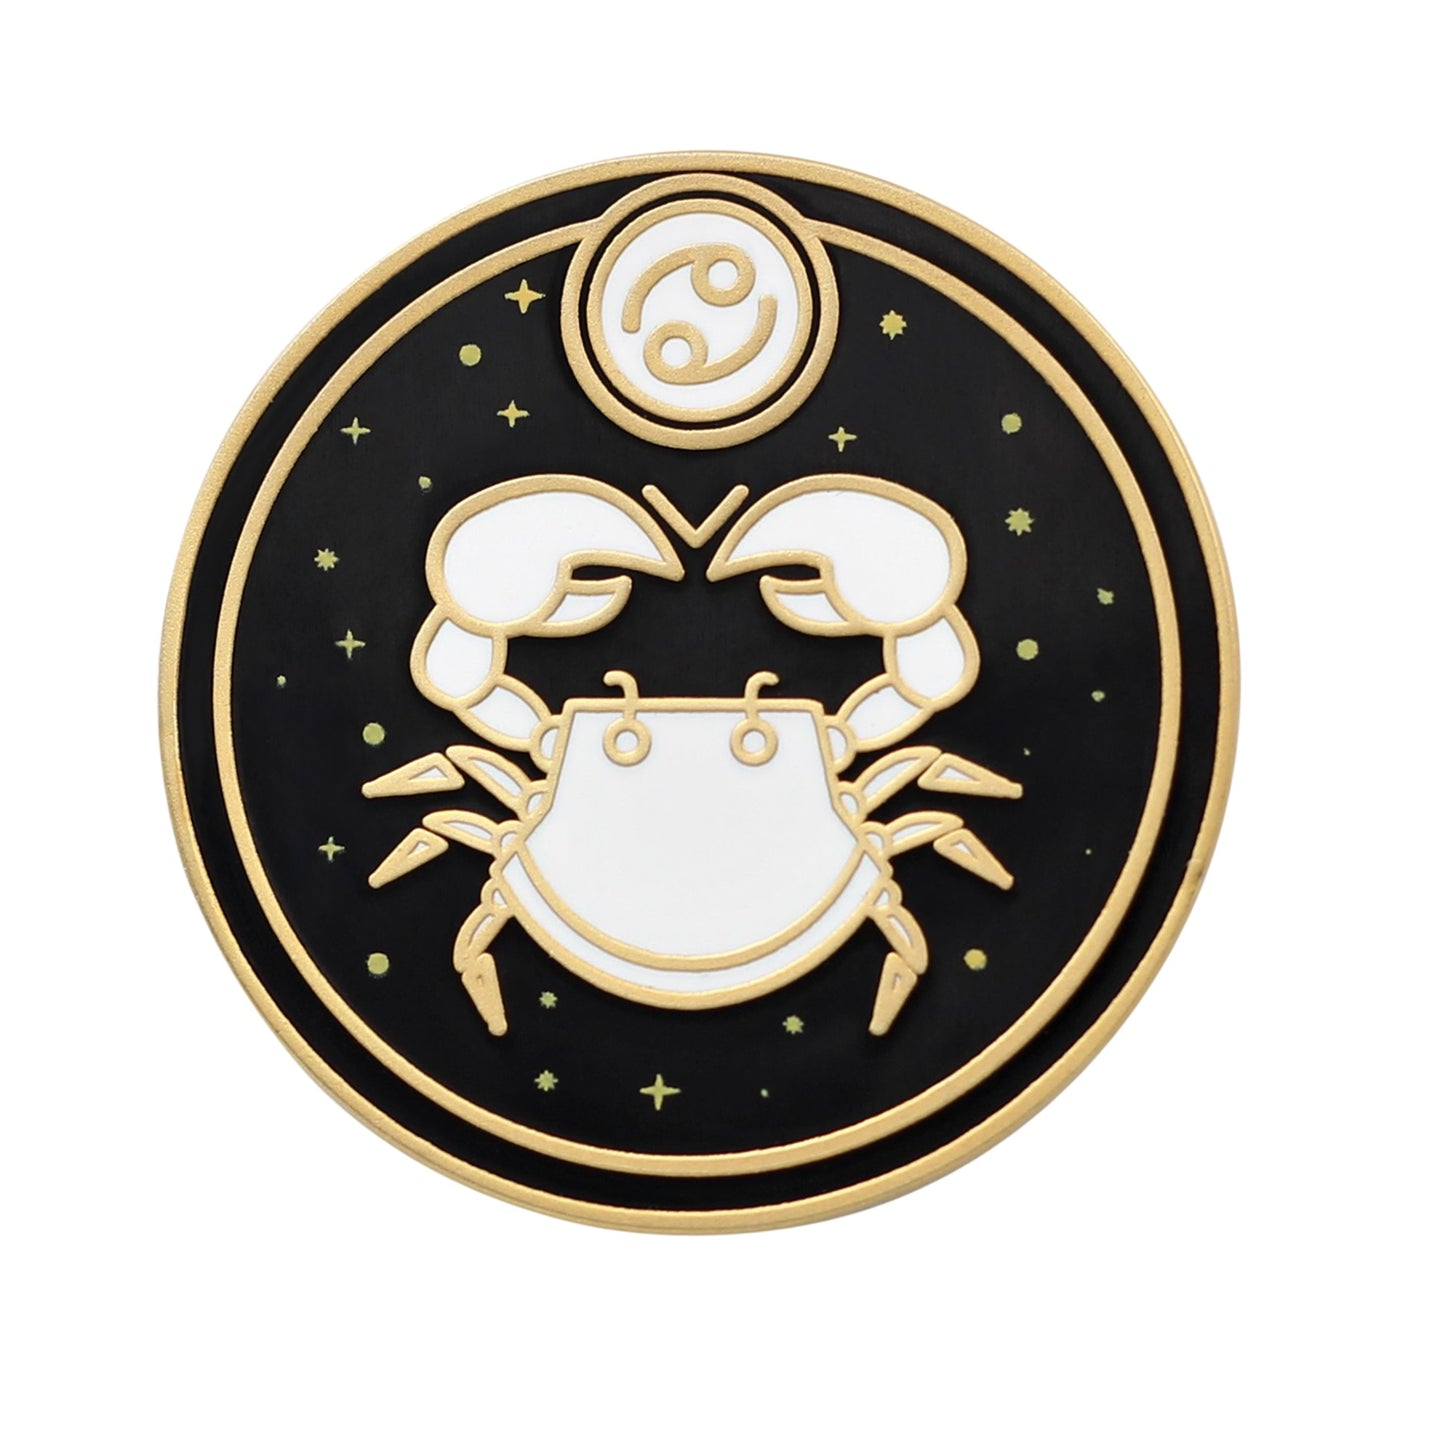 Cancer Astrological Sign Enamel Pin